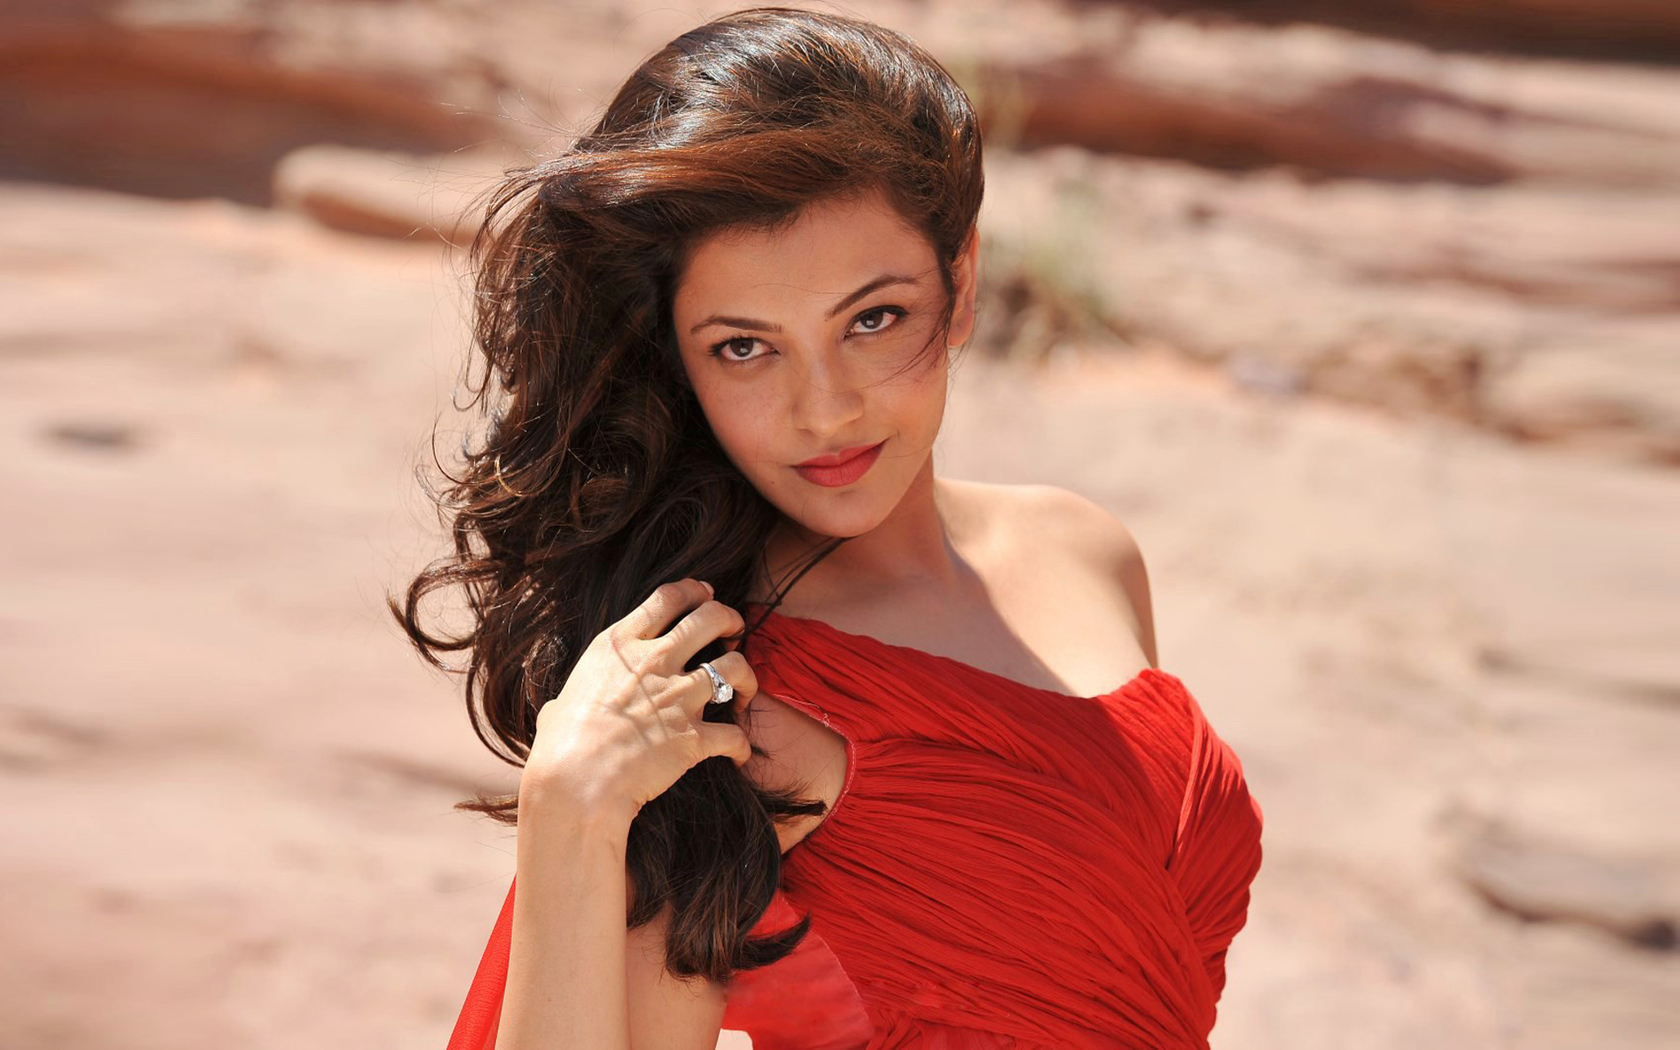 kajal-agarwal-in-red-dress-qhd.jpg